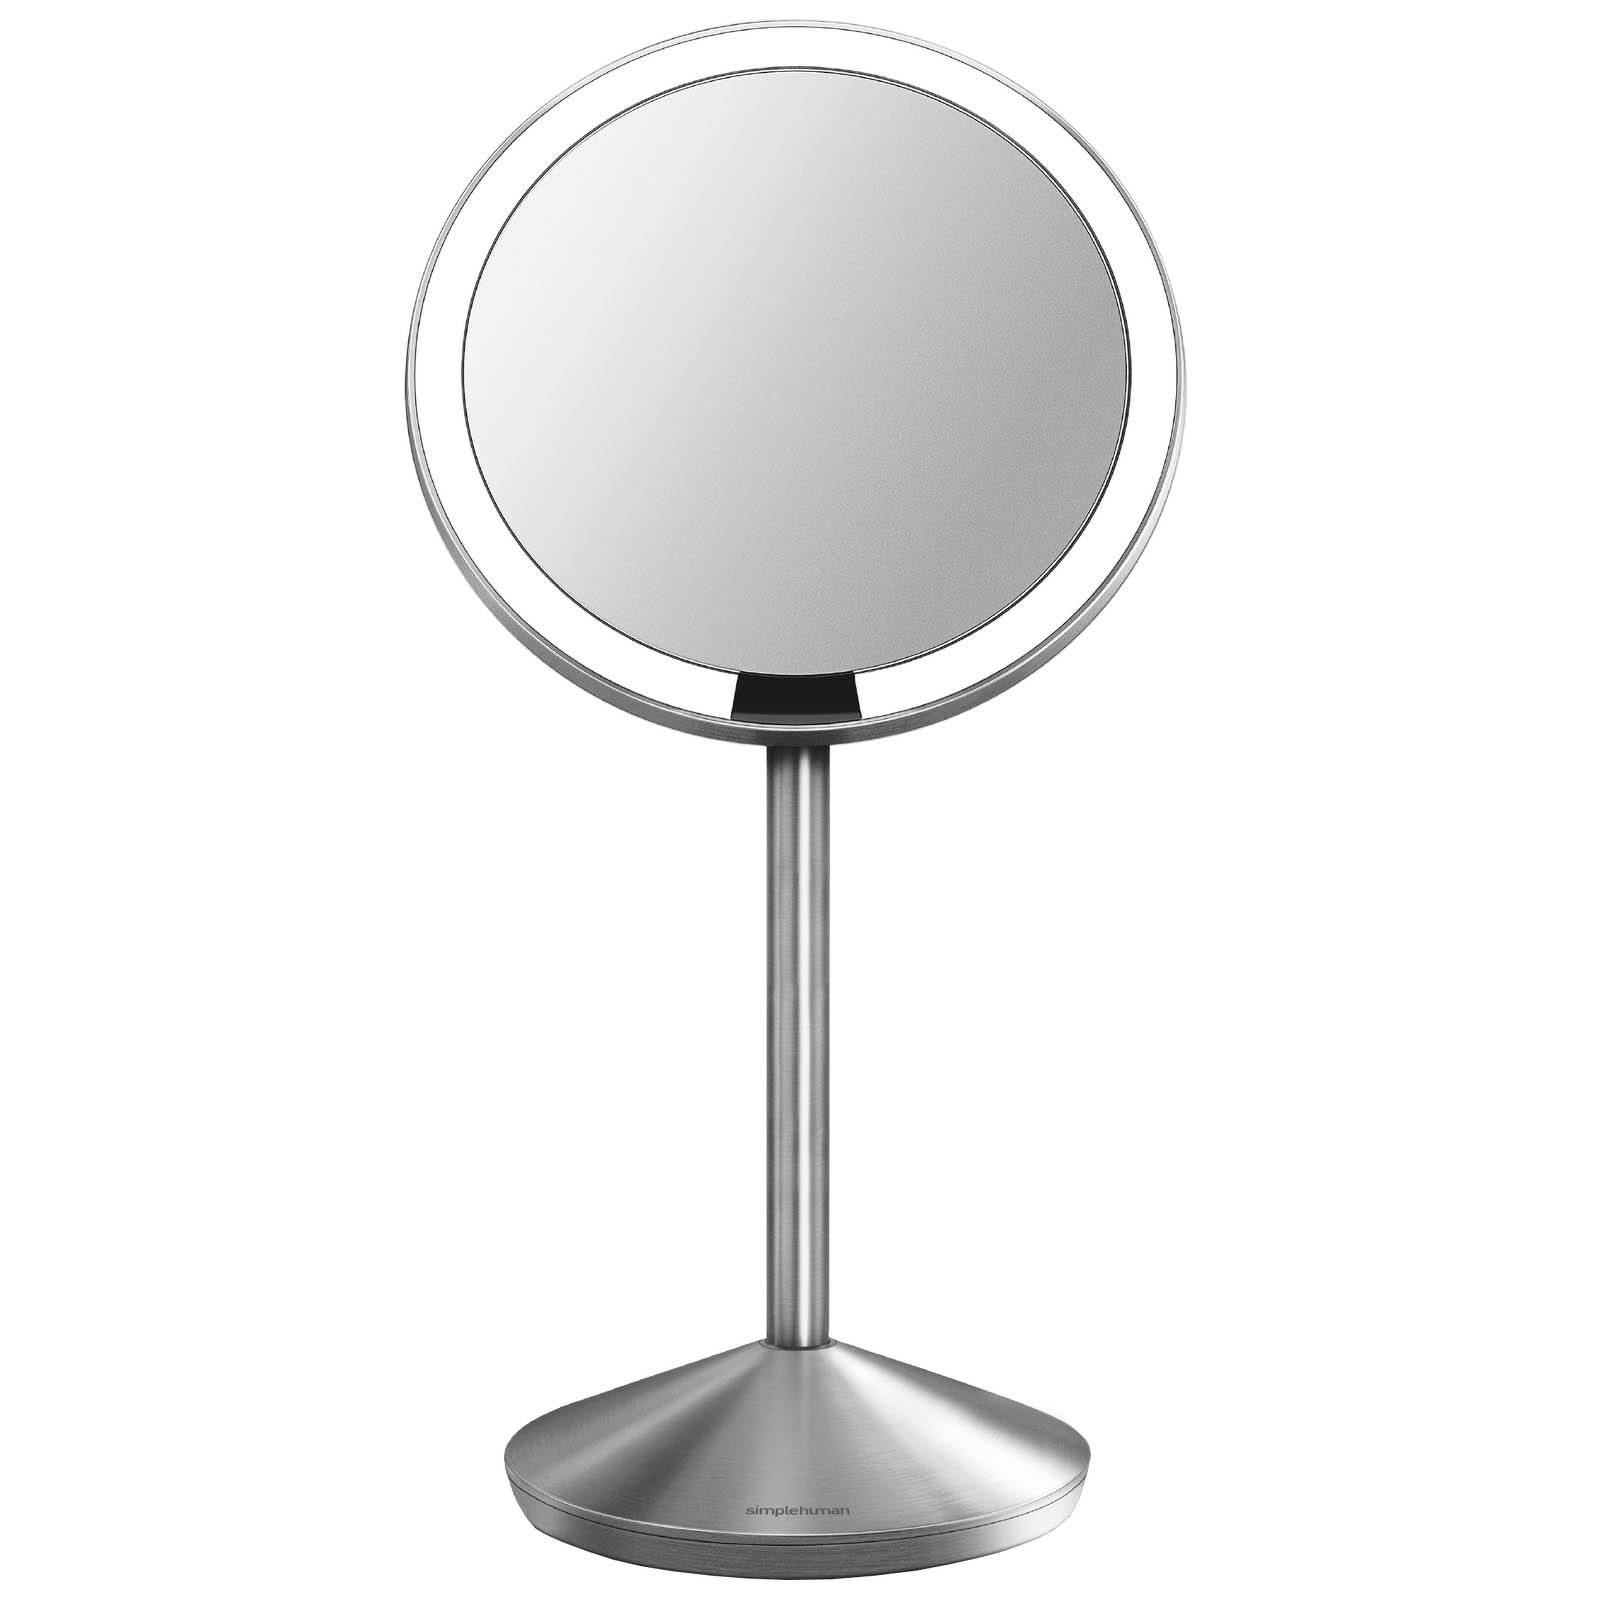 simplehuman - Sensor Mirrors 10 x Magnification 12cm Sensor Mirror: Round, with Travel Case, Stainless Steel for Women